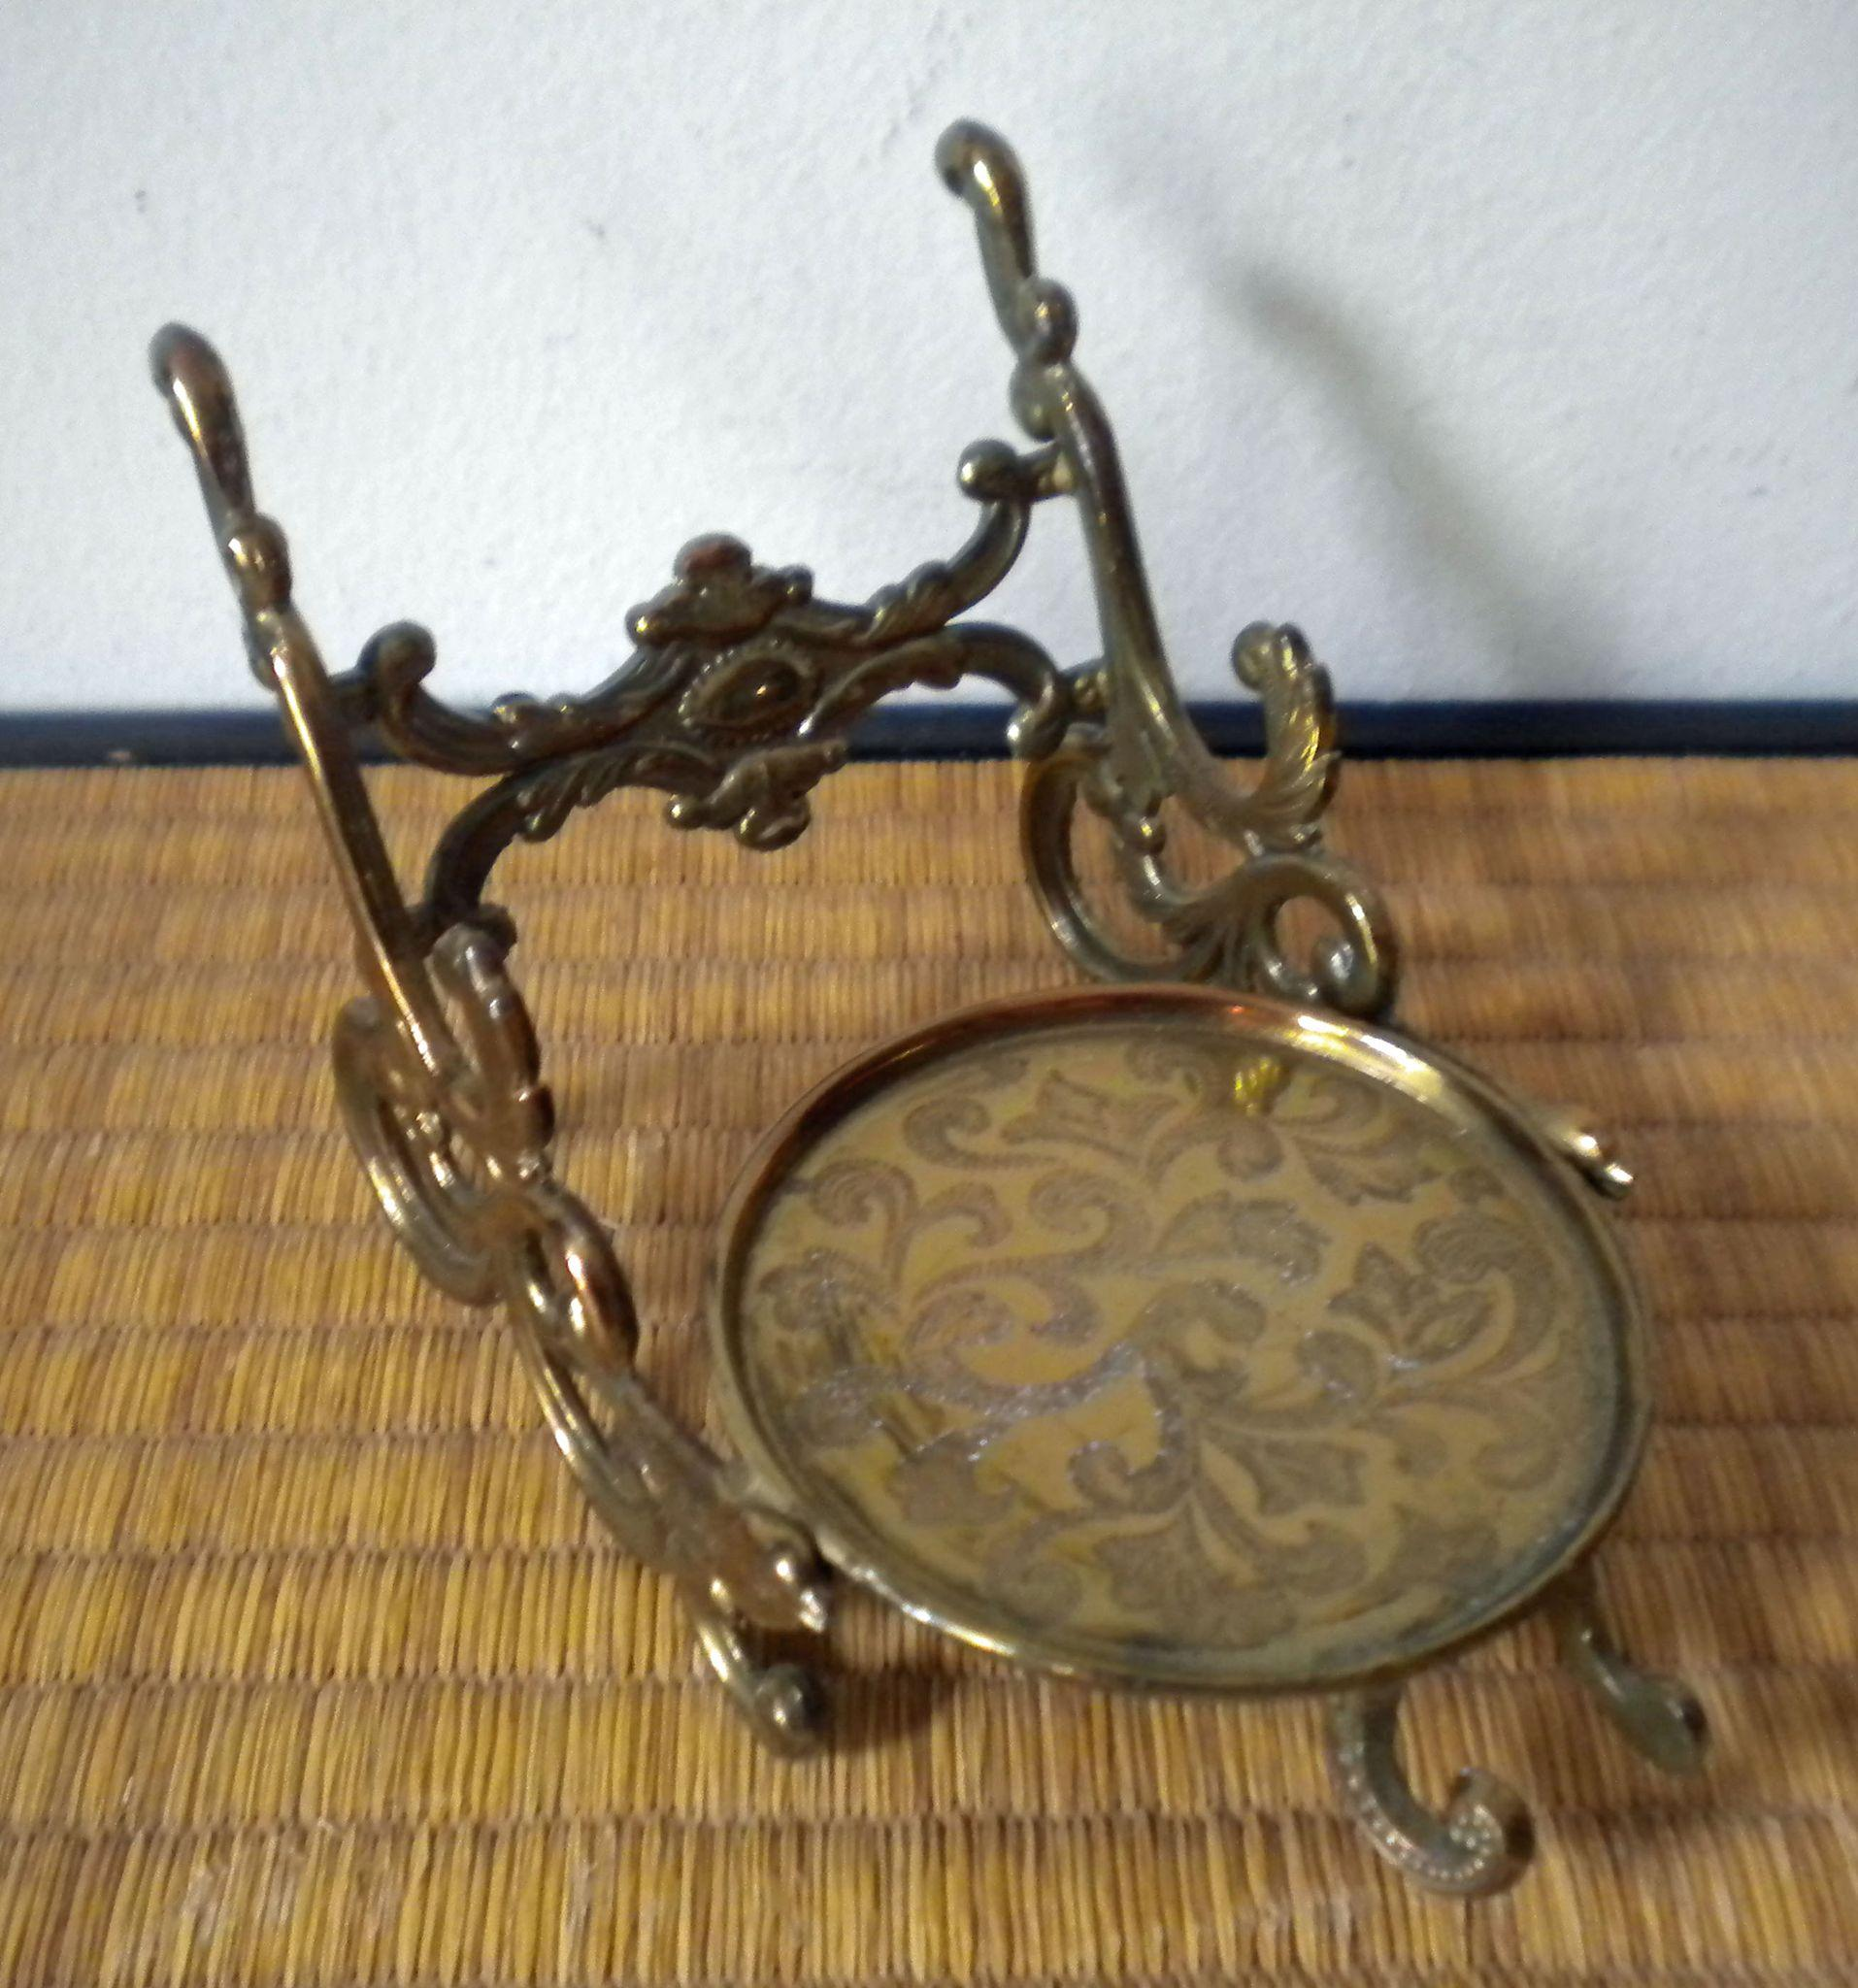 Vintage Brass Cup And Saucer Display Stand With Birds Made